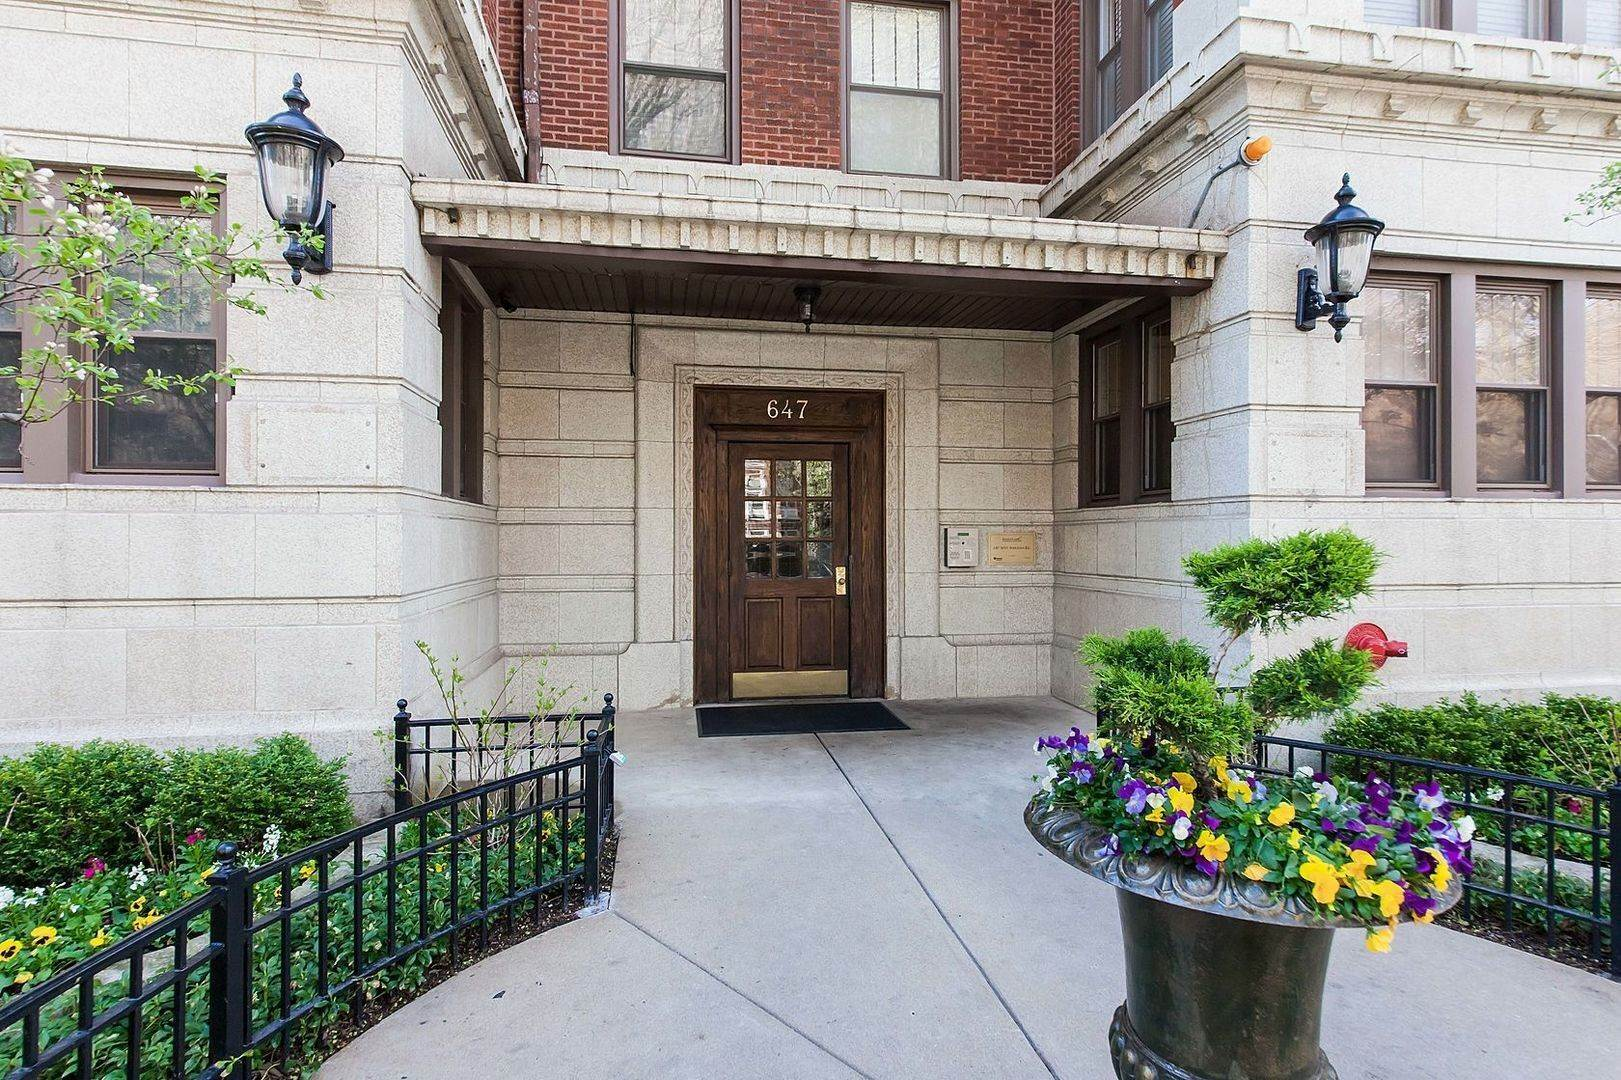 Property for Sale at 647 W Sheridan Road Chicago, Illinois 60613 United States